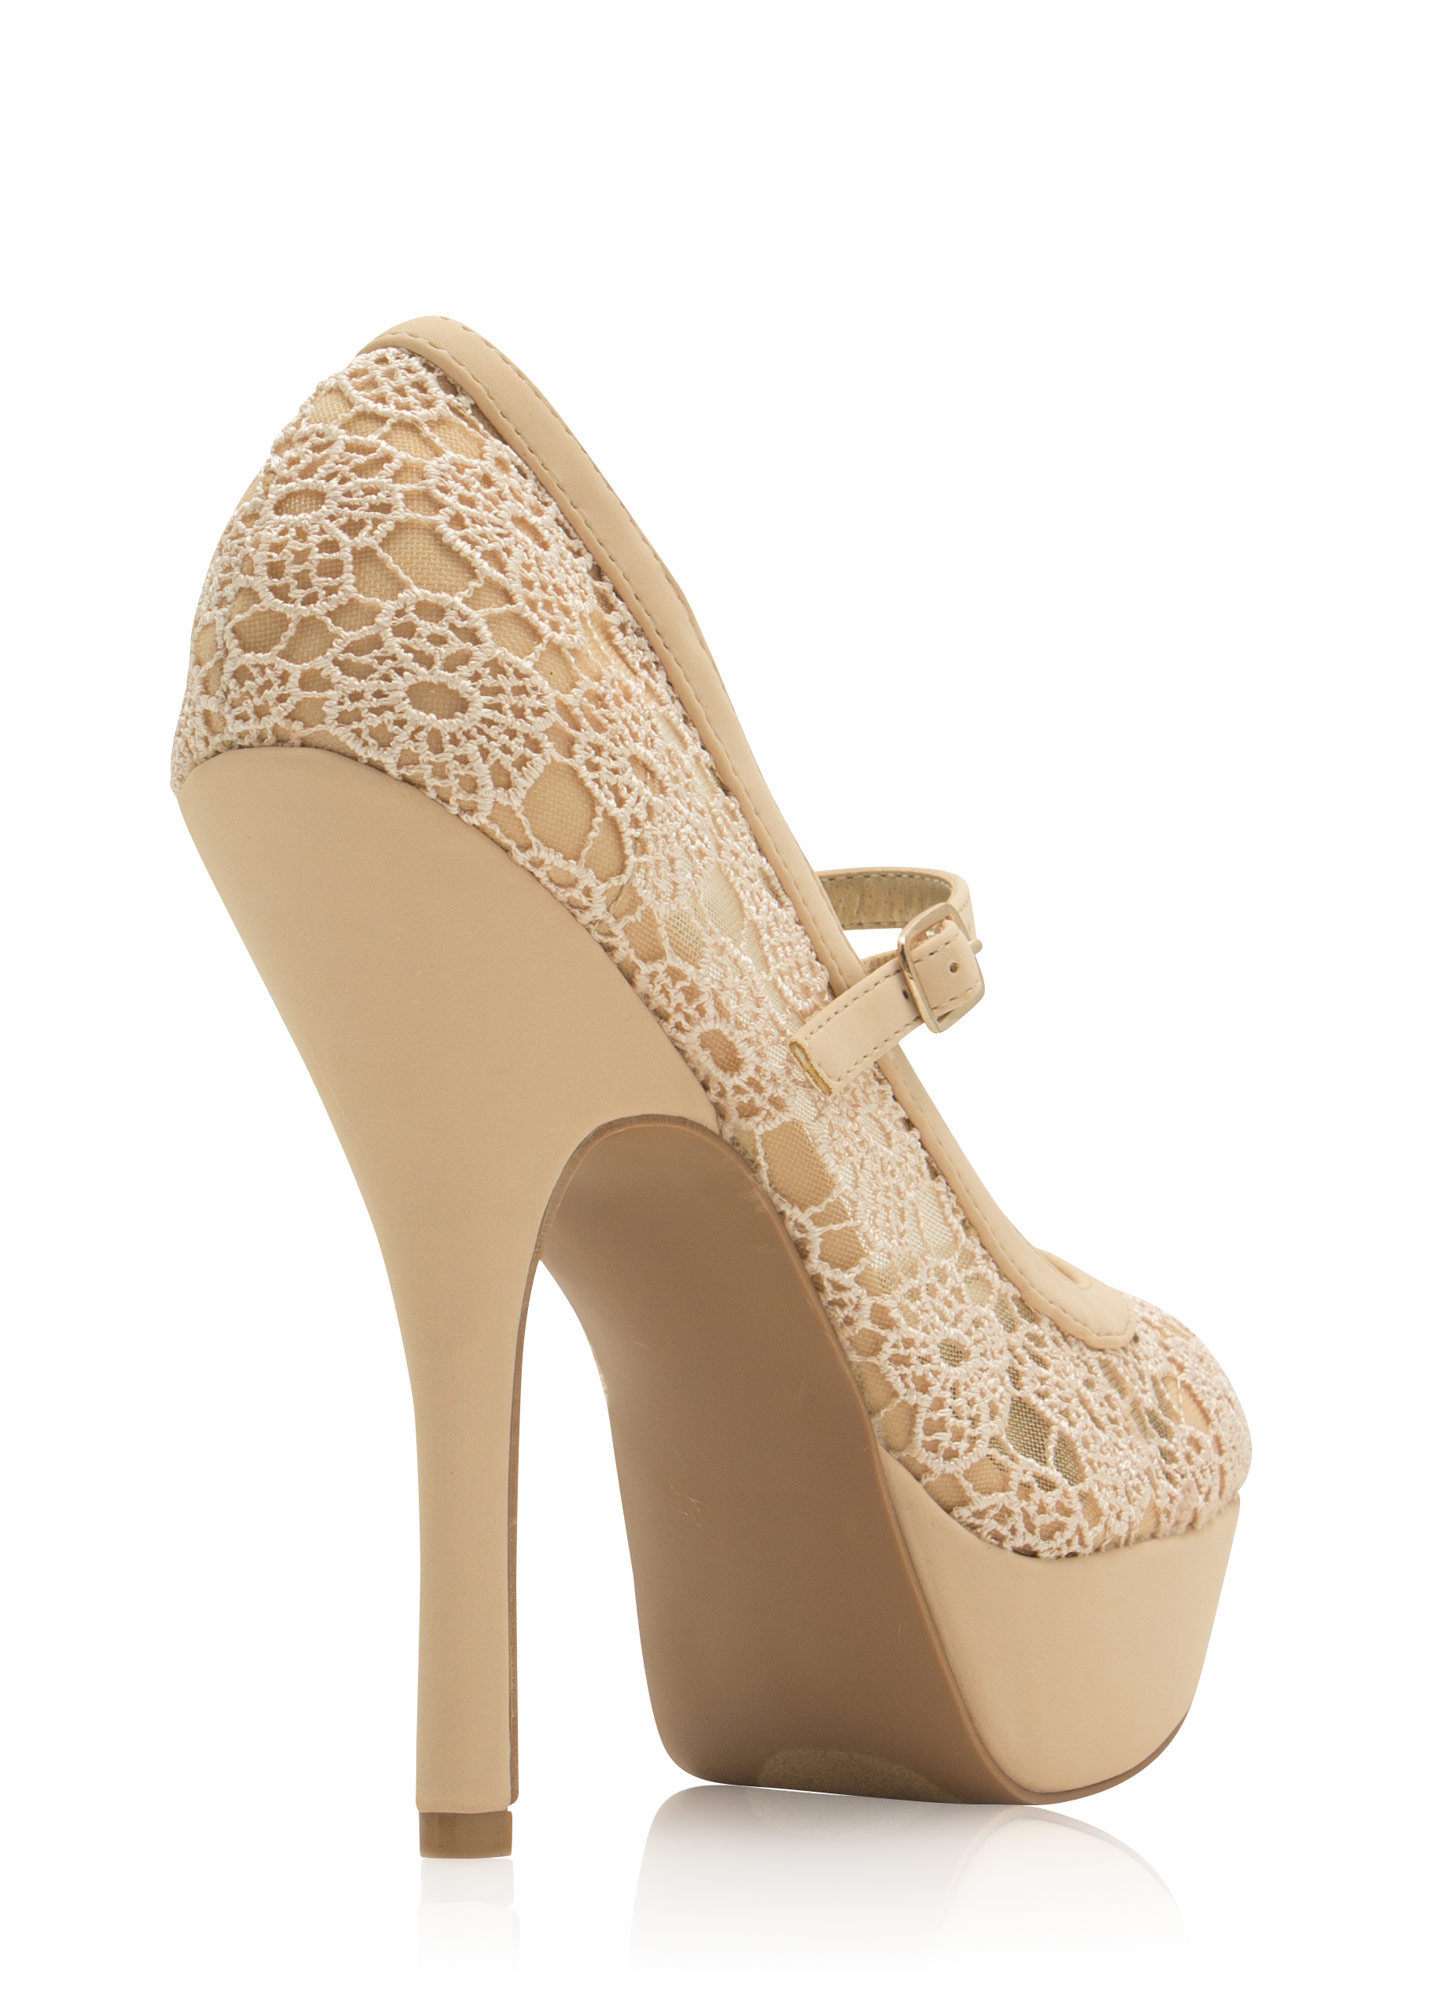 Daisy Crochet Mary Jane Heels NUDE